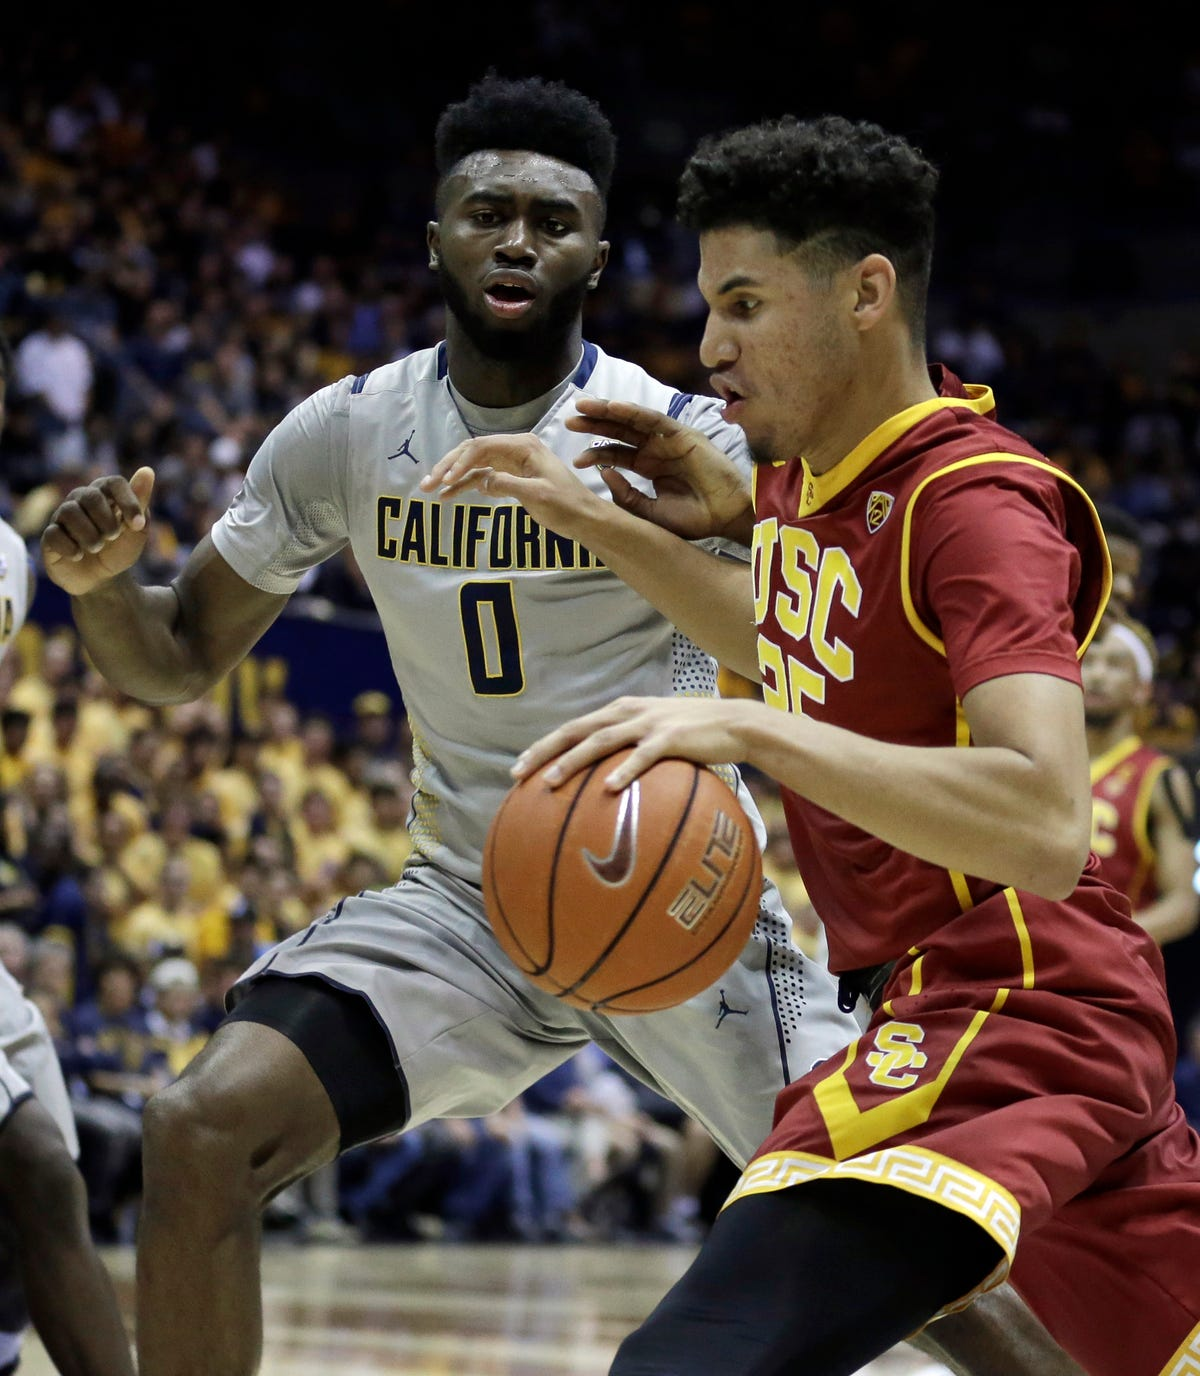 separation shoes 55036 99c66 Cal beats USC 87-65 to finish season unbeaten at home